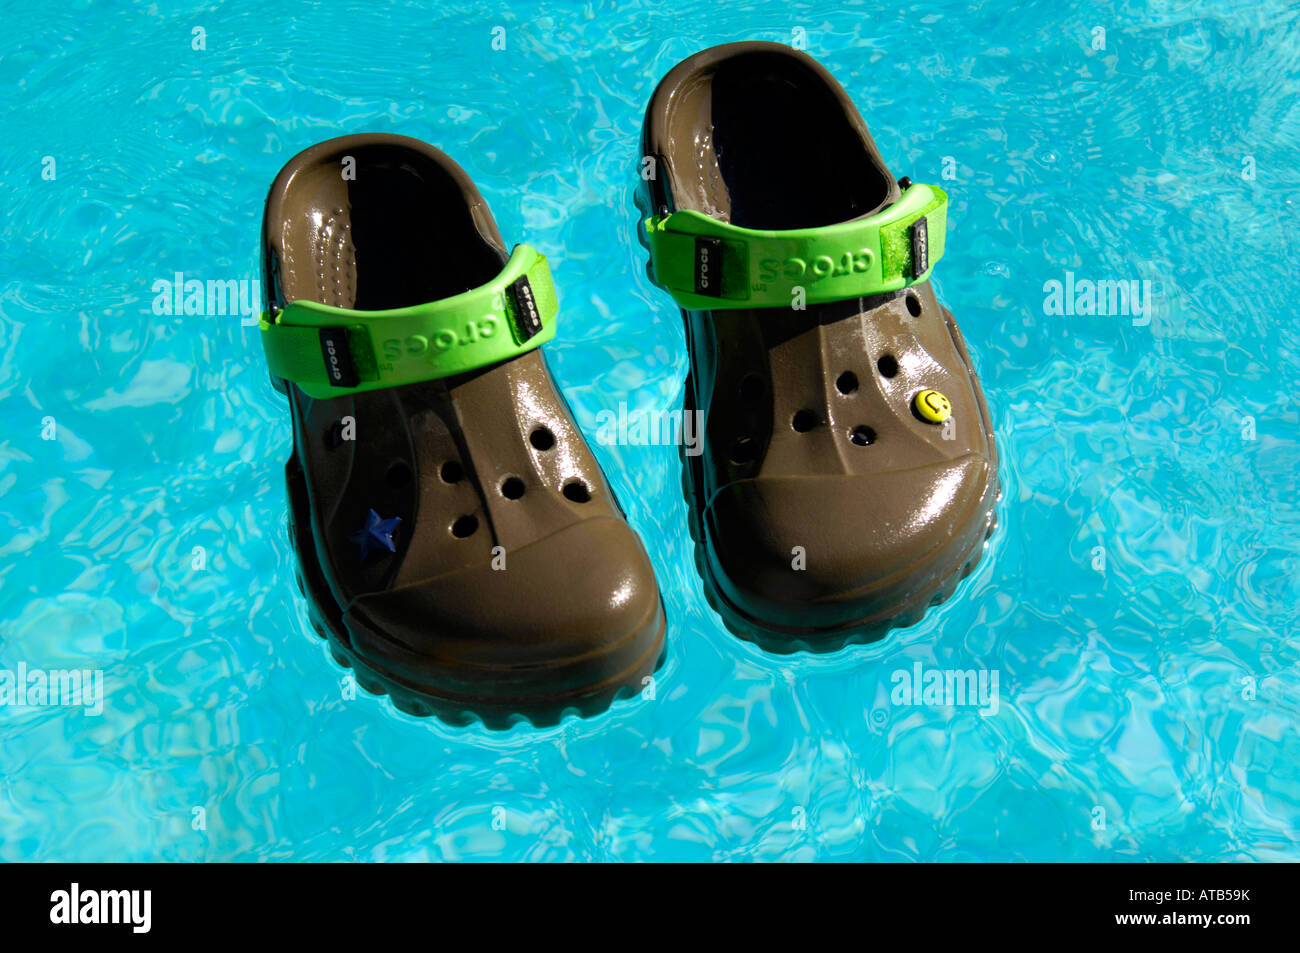 Crocs Chocolate Lime Offroad Footwear Swimming Pool Floating Shoes Stock Photo Royalty Free